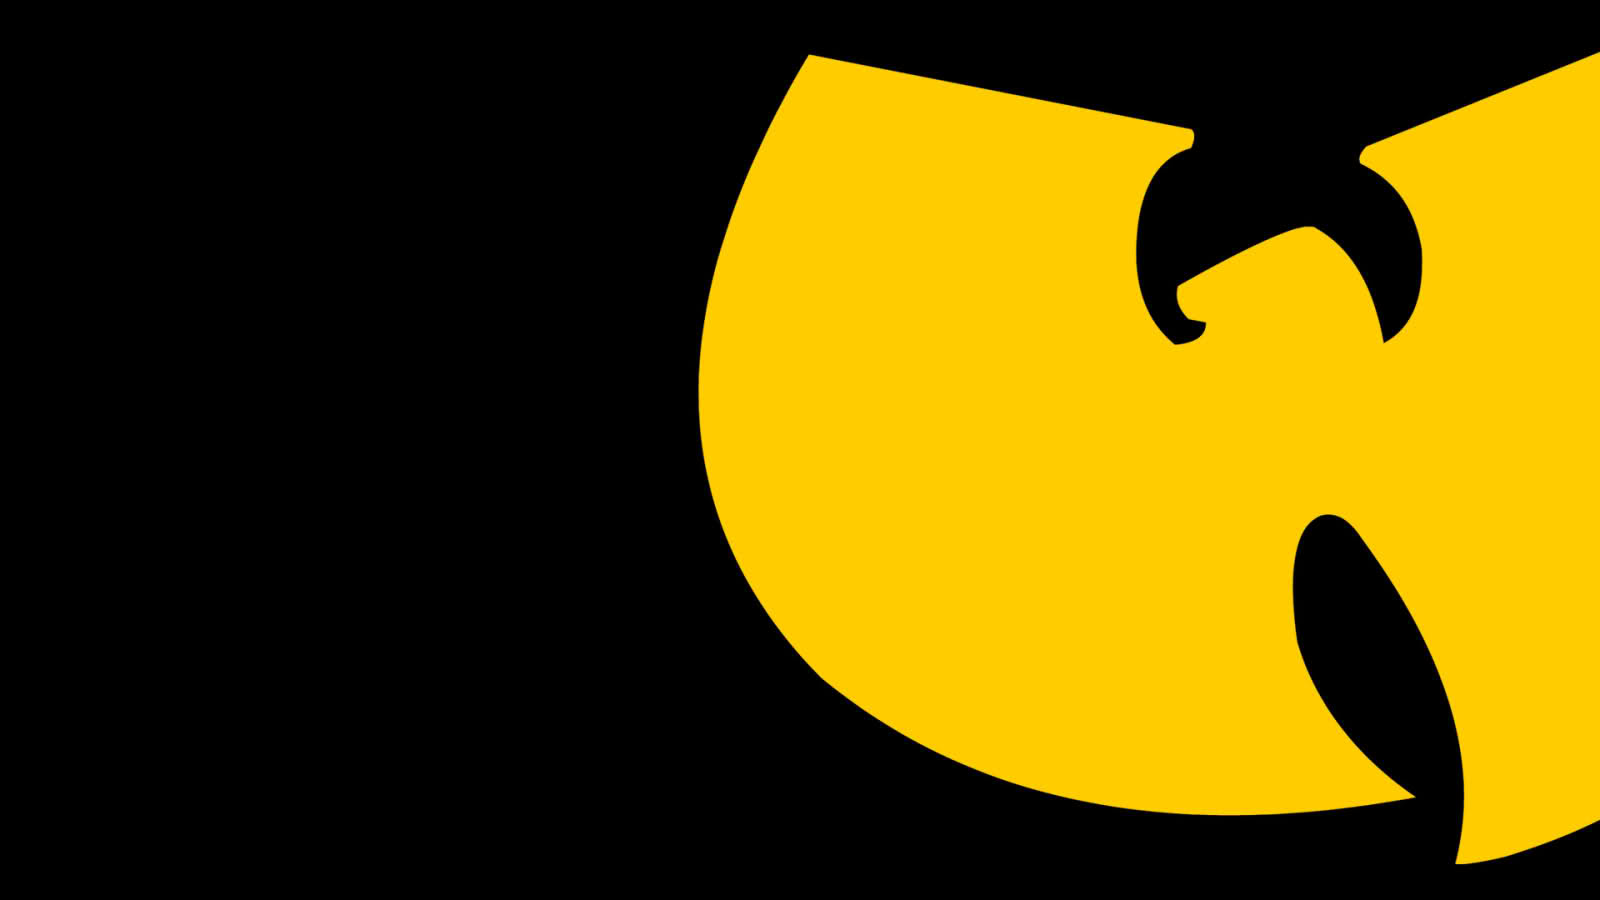 wallpaper a day wu tang clan yellow logo wallpaper